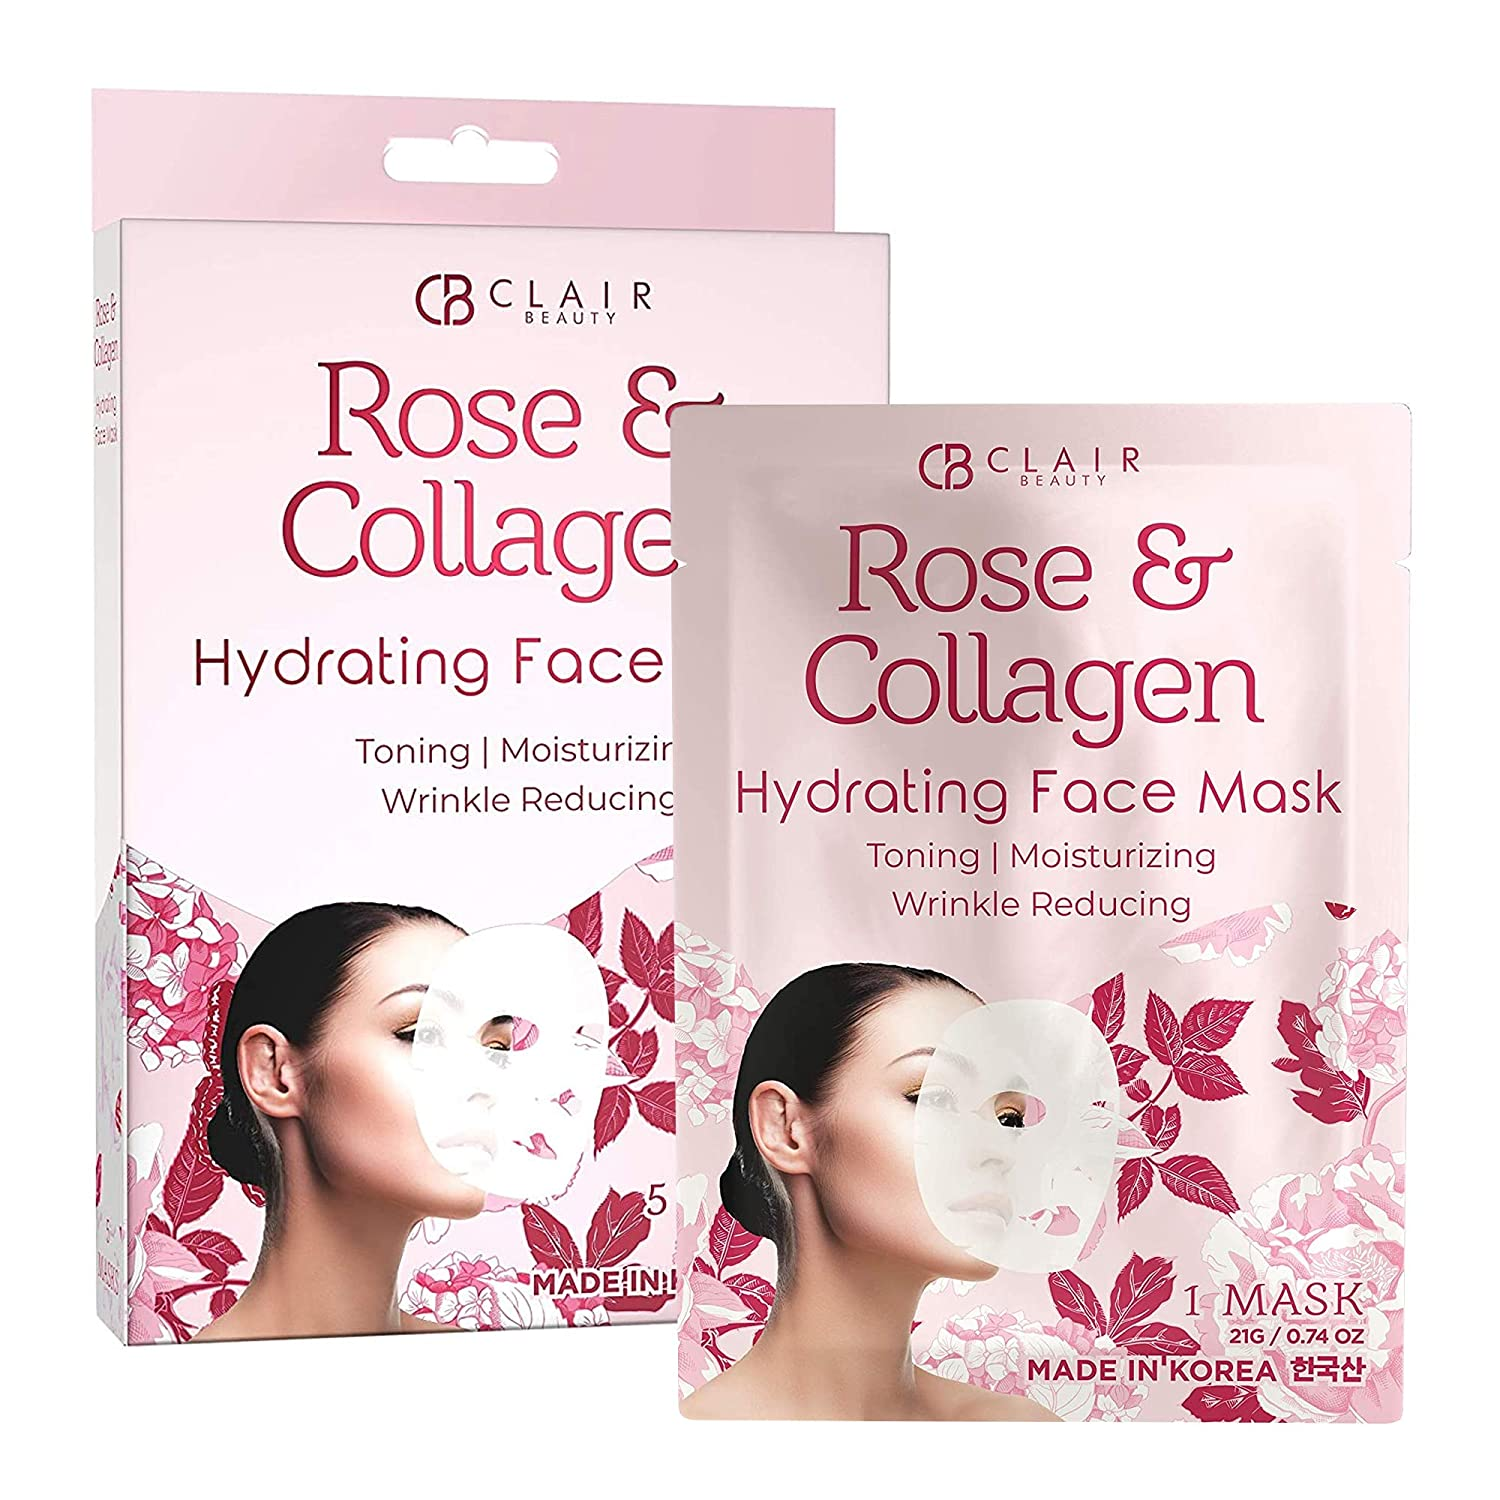 CLAIR BEAUTY Rose & Collagen Hydrating Sheet Face Mask - Deeply Moisturizing, Toning & Lifting   Reduces of Wrinkles & Fine Lines   Reduces Signs of Aging & Dry Patches   Made in Korea - 5 Pack